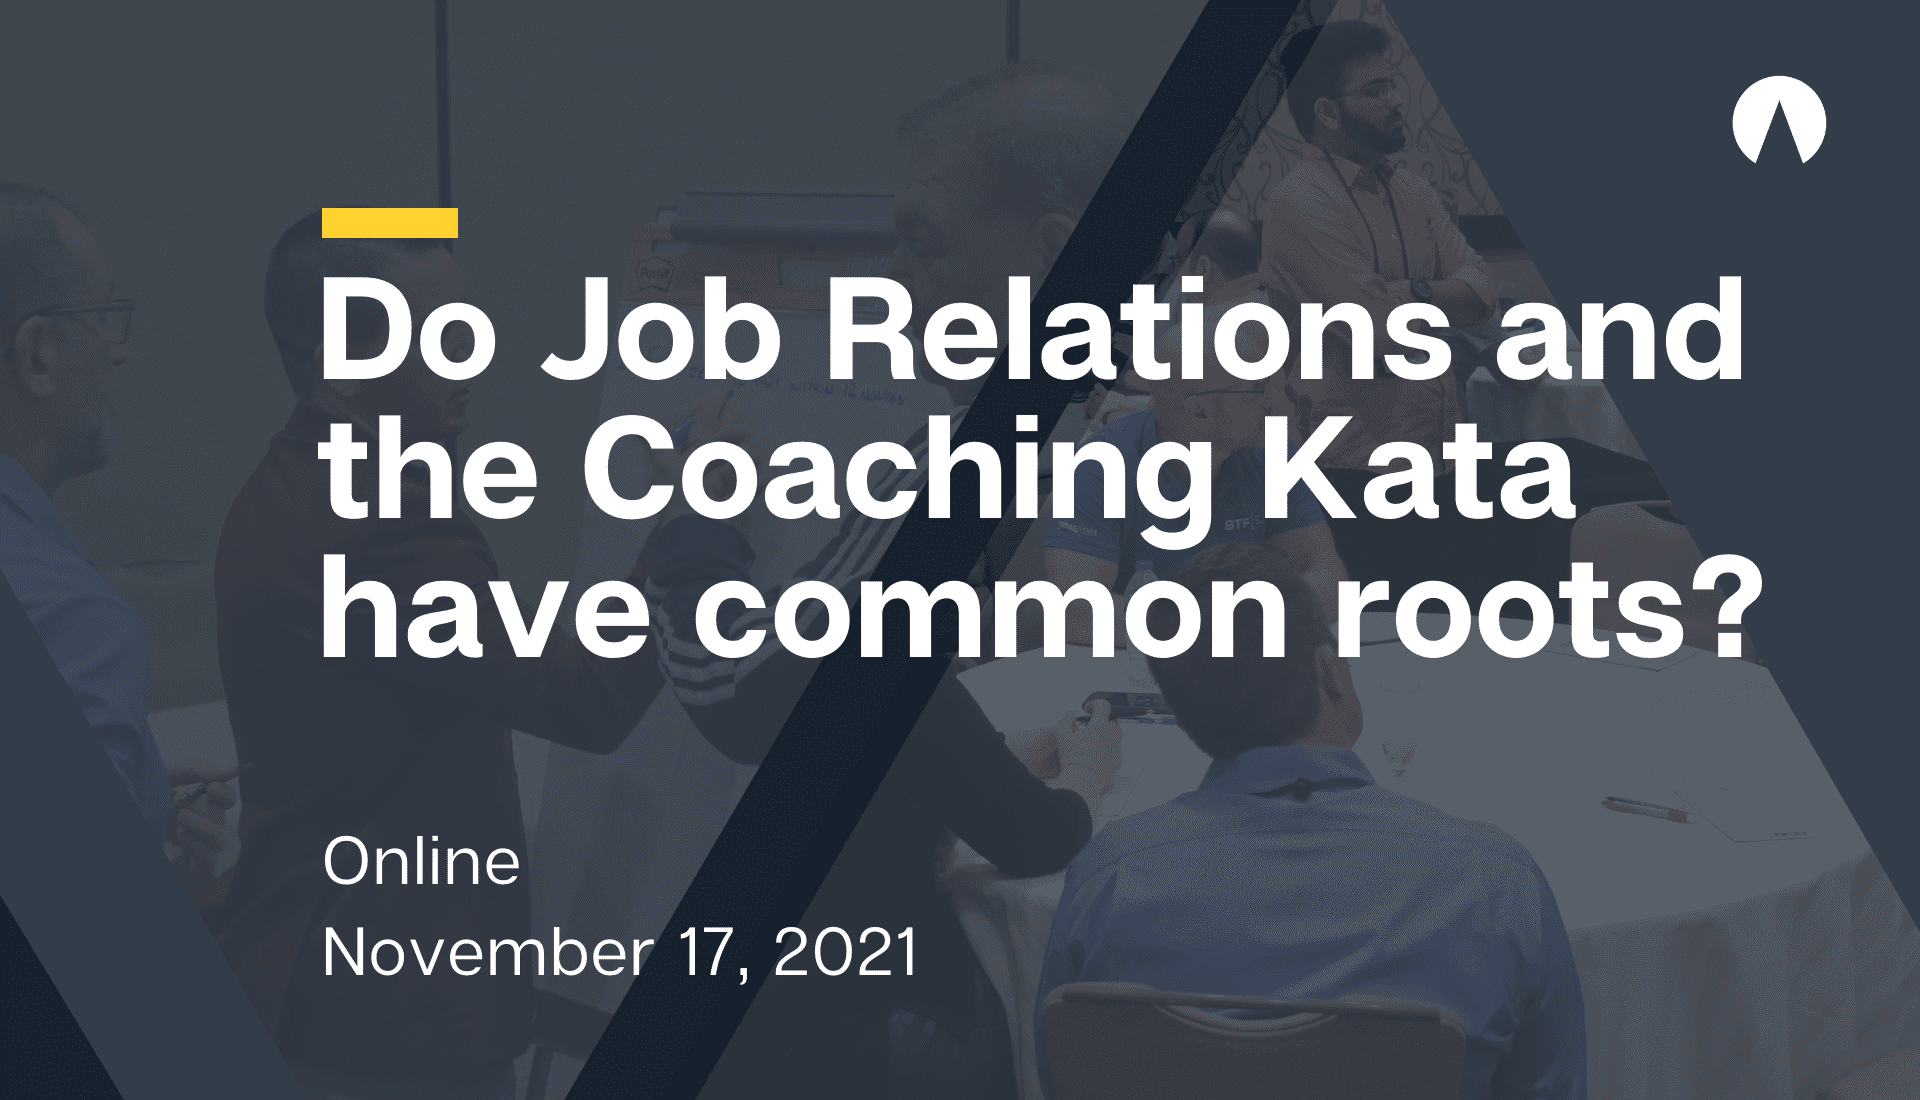 Do Job Relations and the Coaching Kata have common roots?